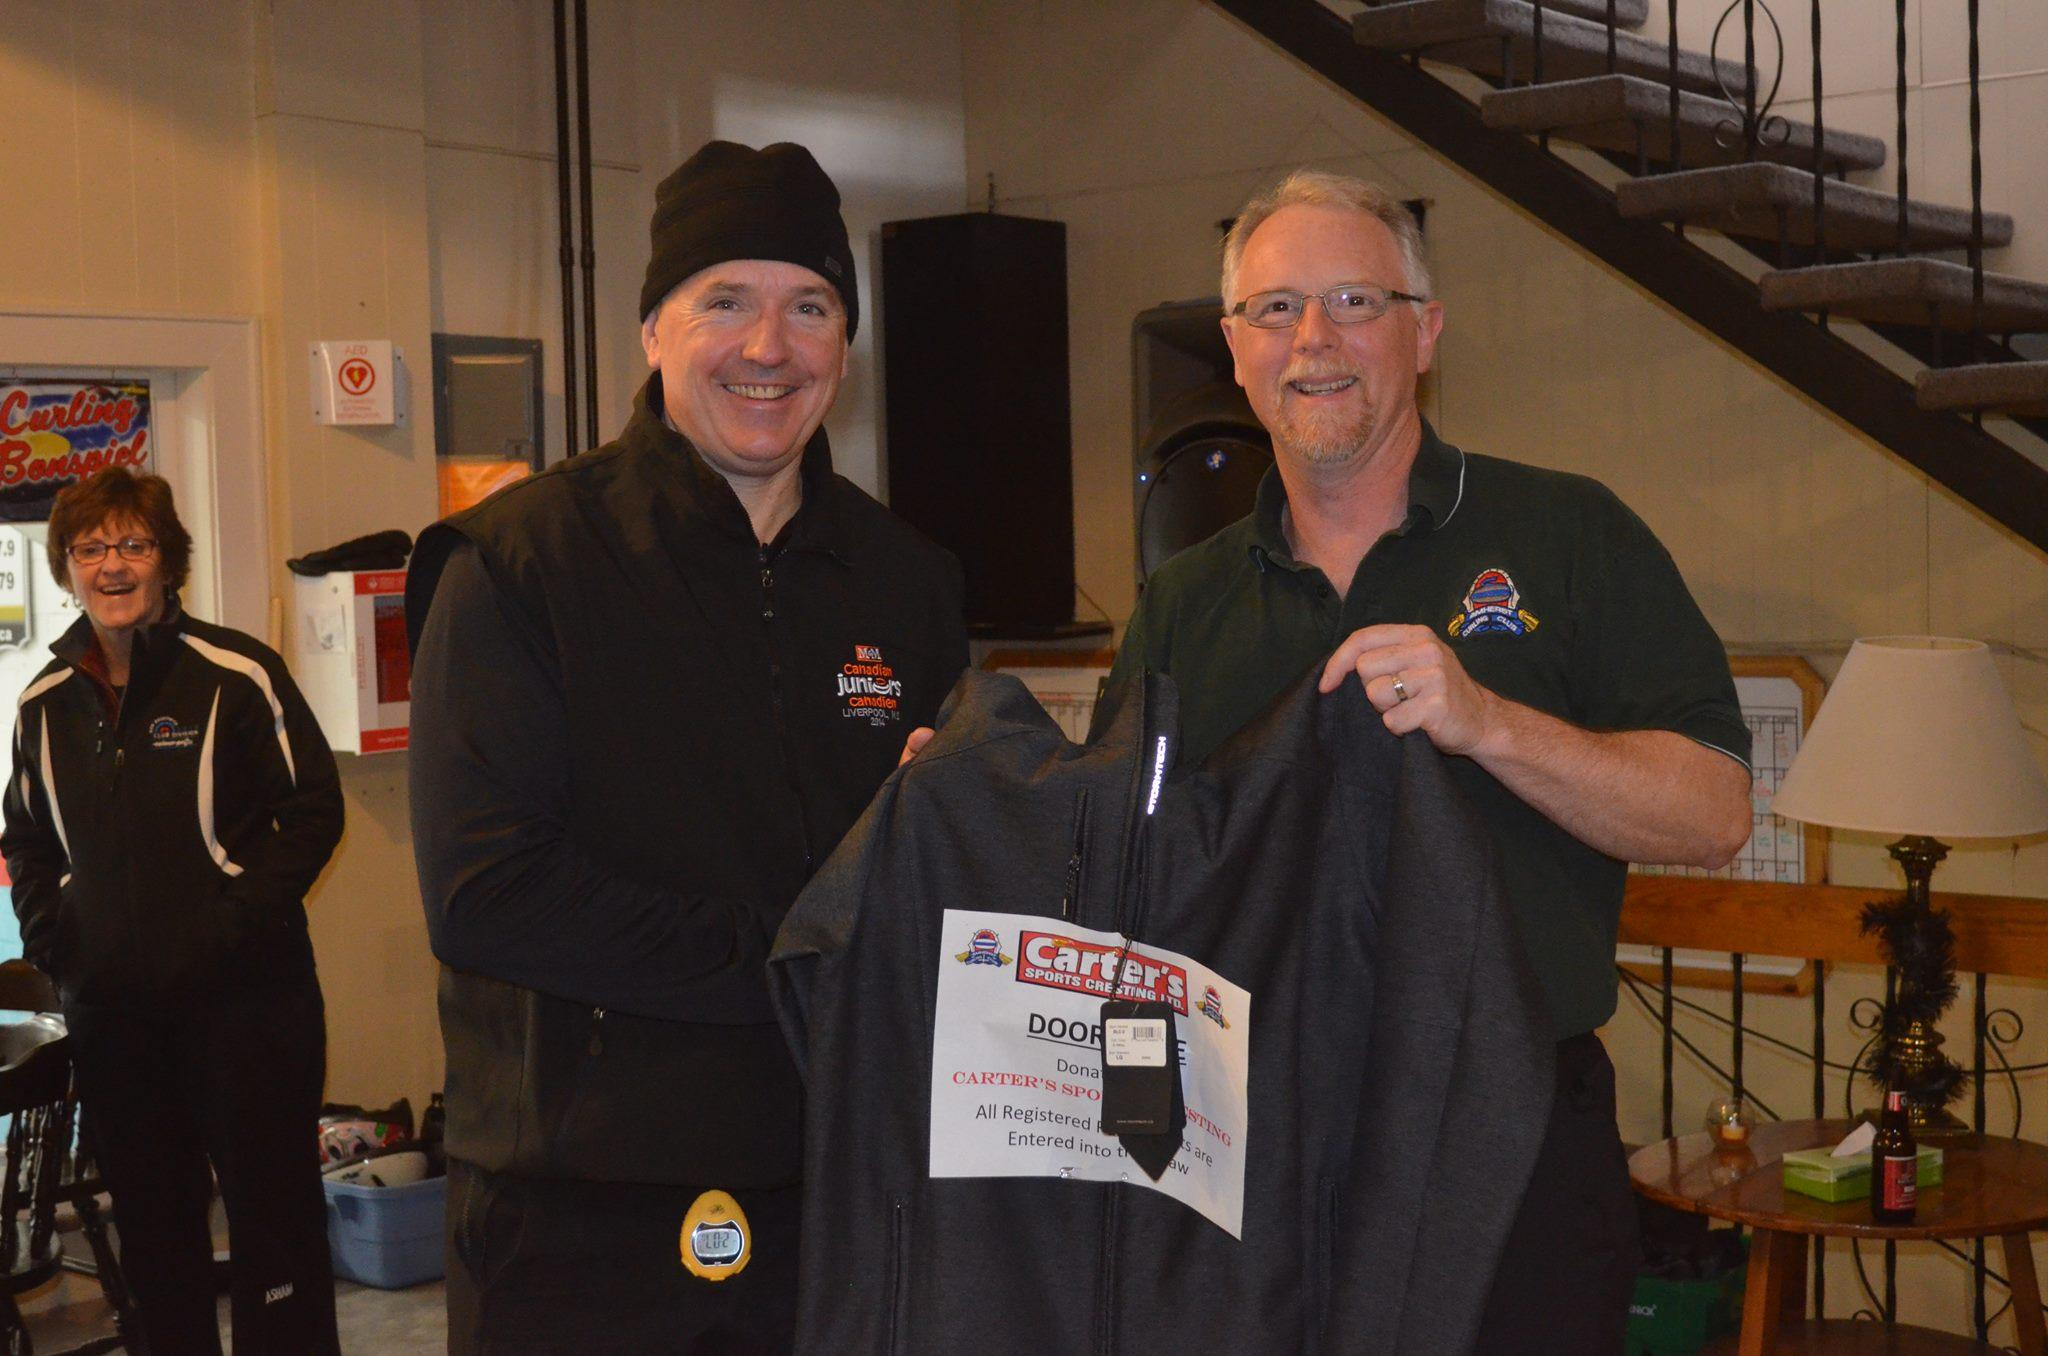 Carter's Sports Cresting Bonspiel 2016 - Door Prize Winner - Lary Trites, StormTec Jacket